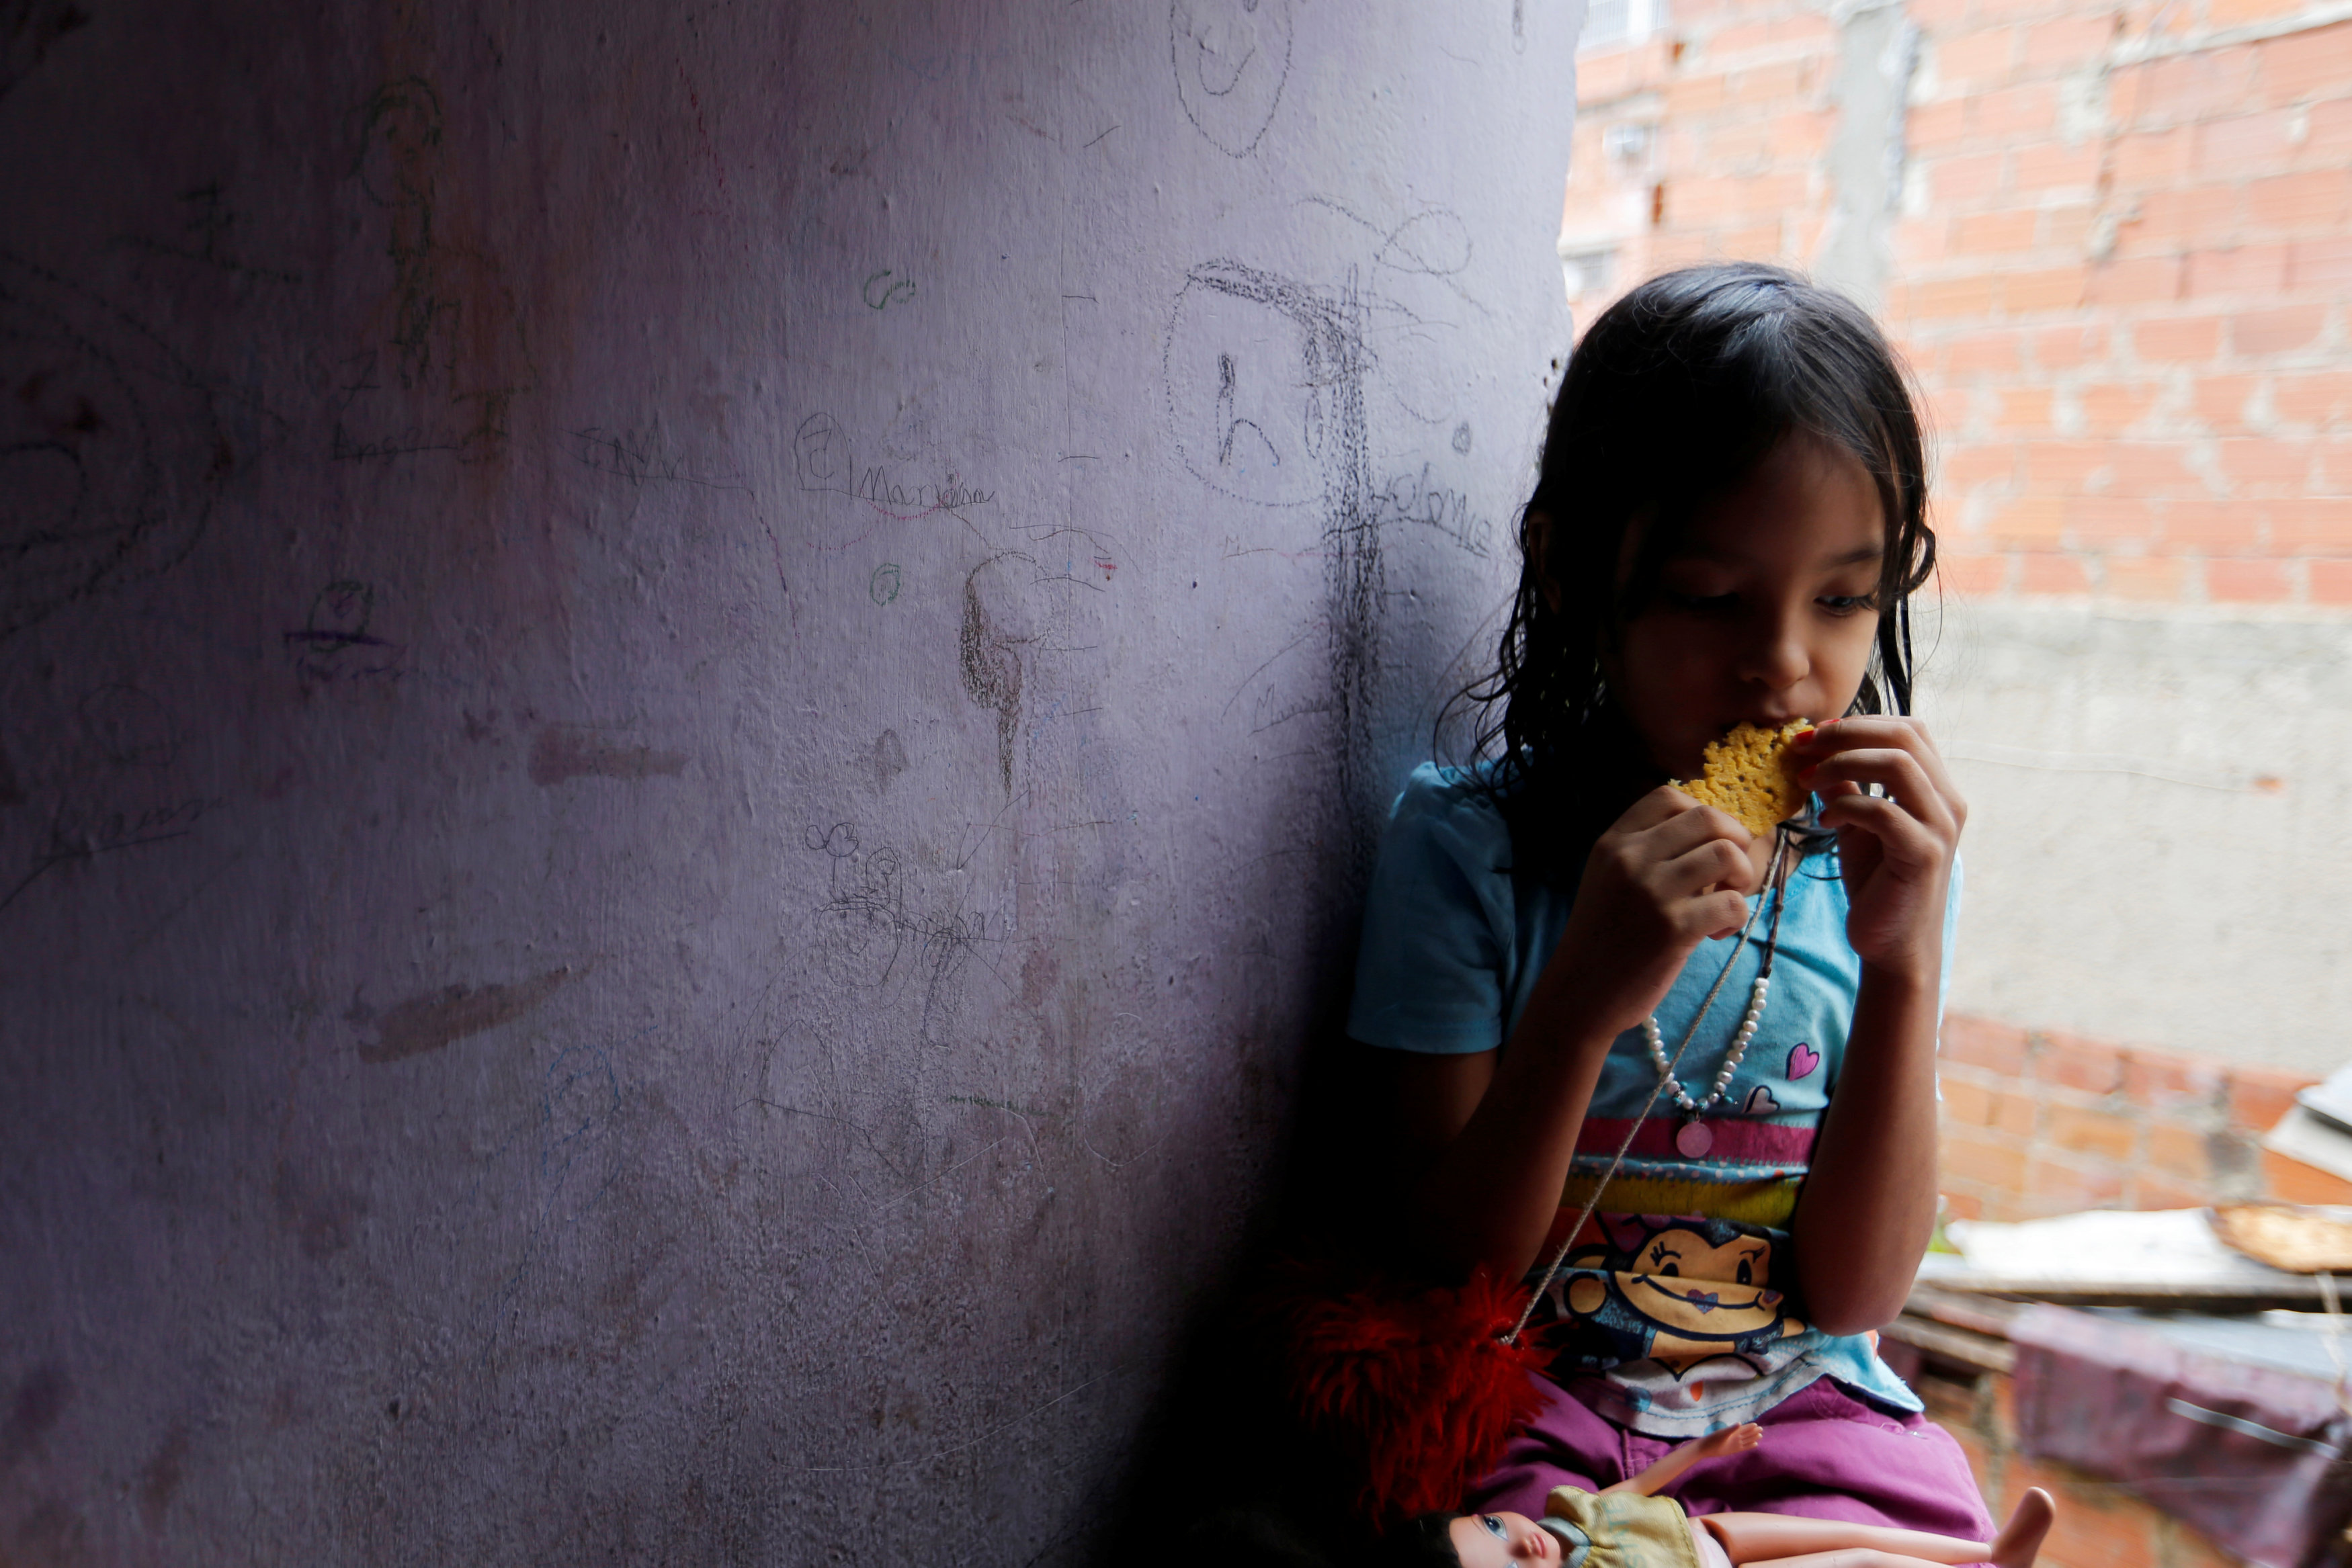 Venezuela's unrest, food scarcity take psychological toll on children